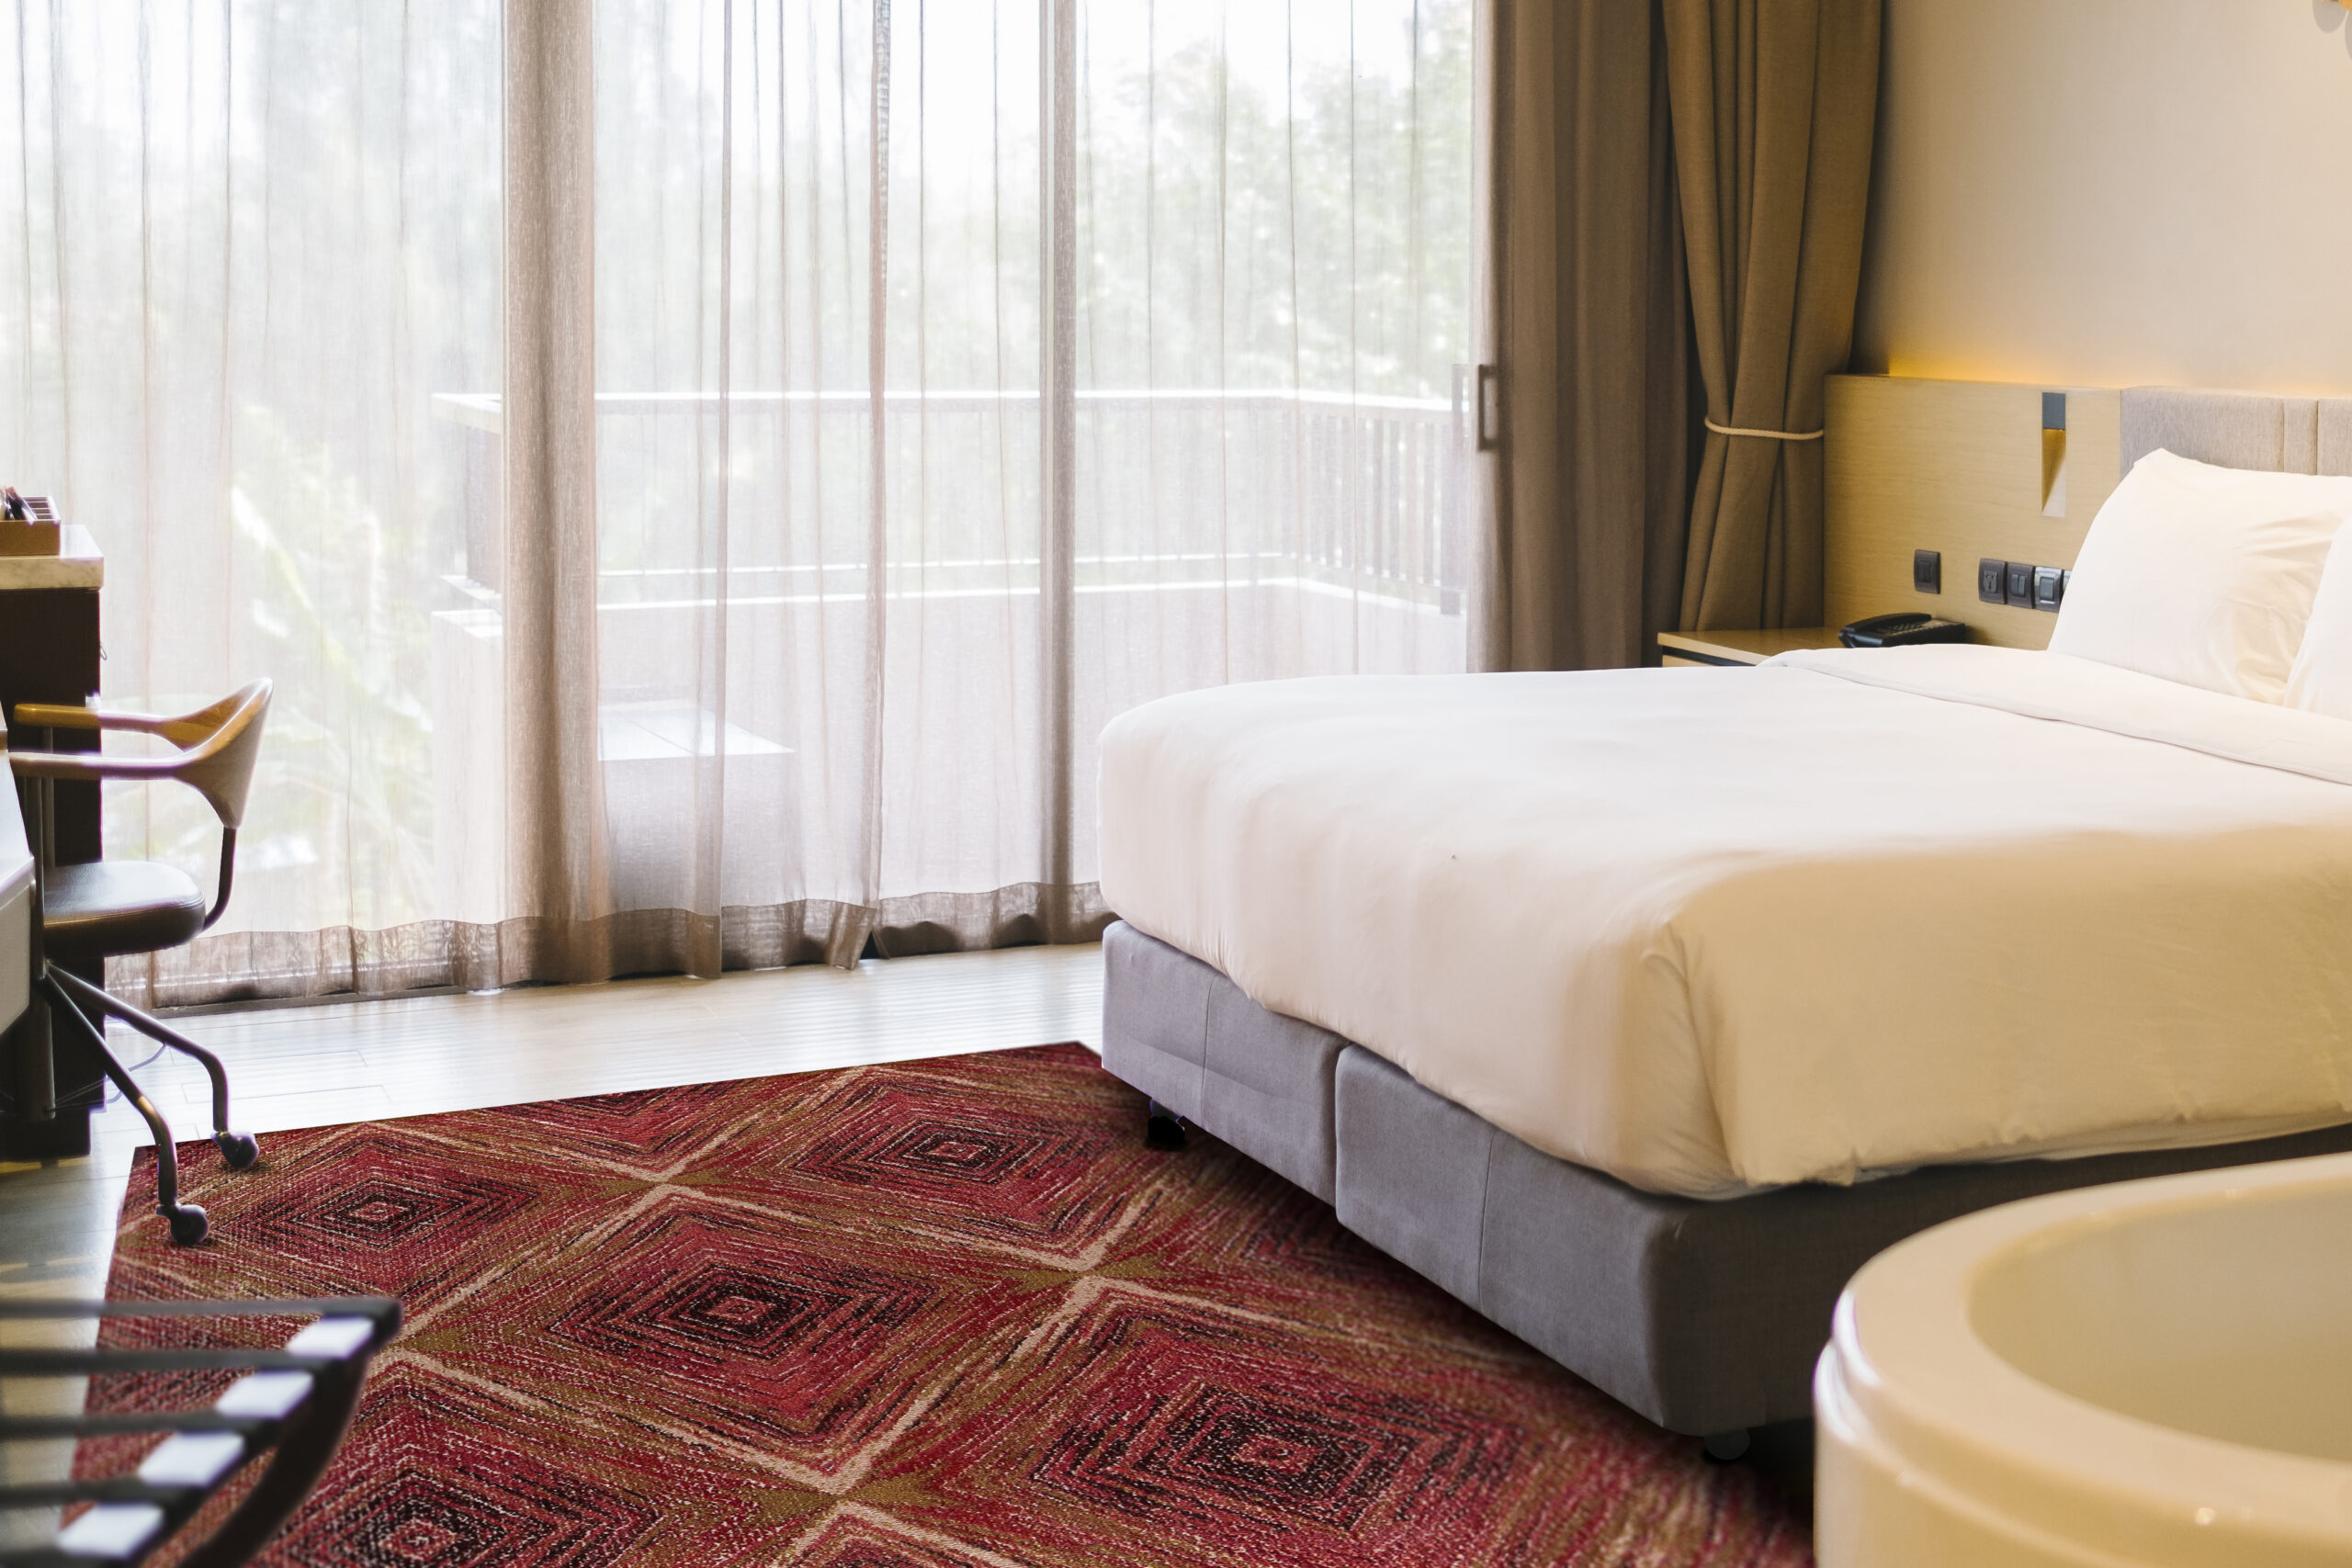 How to choose the best hotel rugs for your hospitality space?